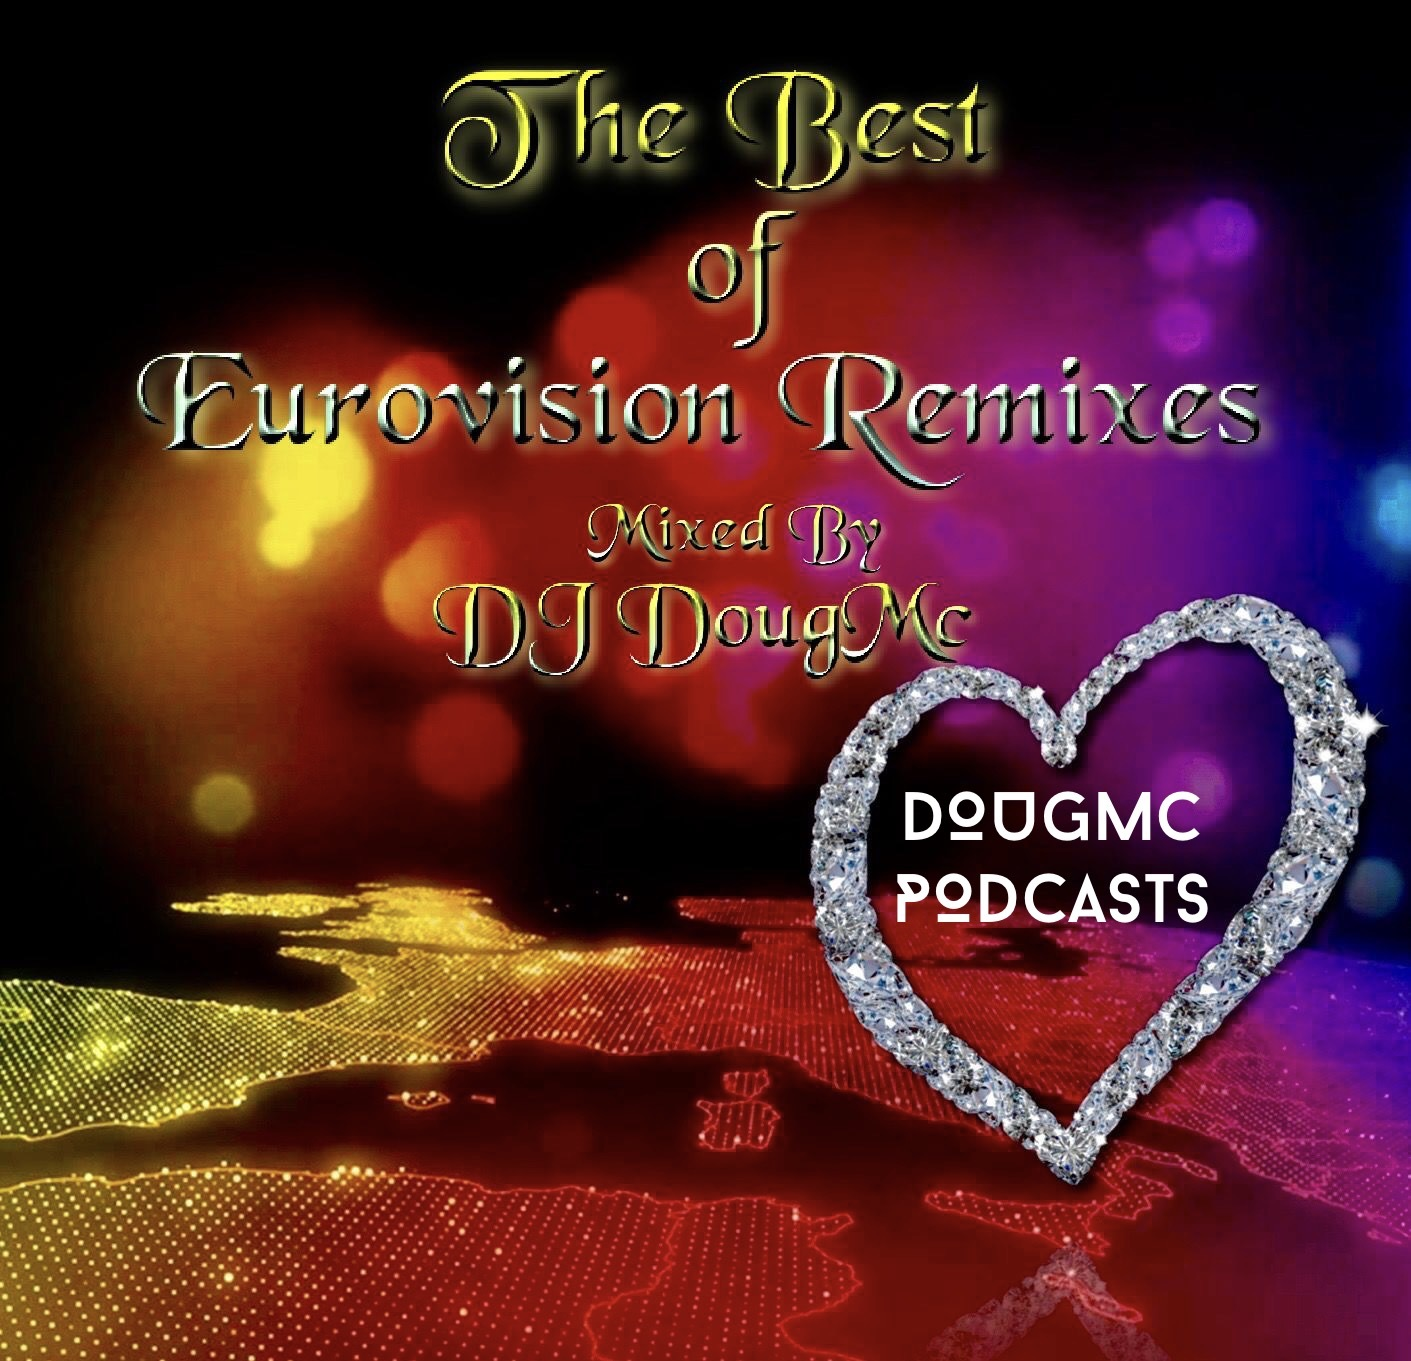 The Best Of Eurovision Remixes - By DJ Dougmc Dougmc Podcasts Mixed